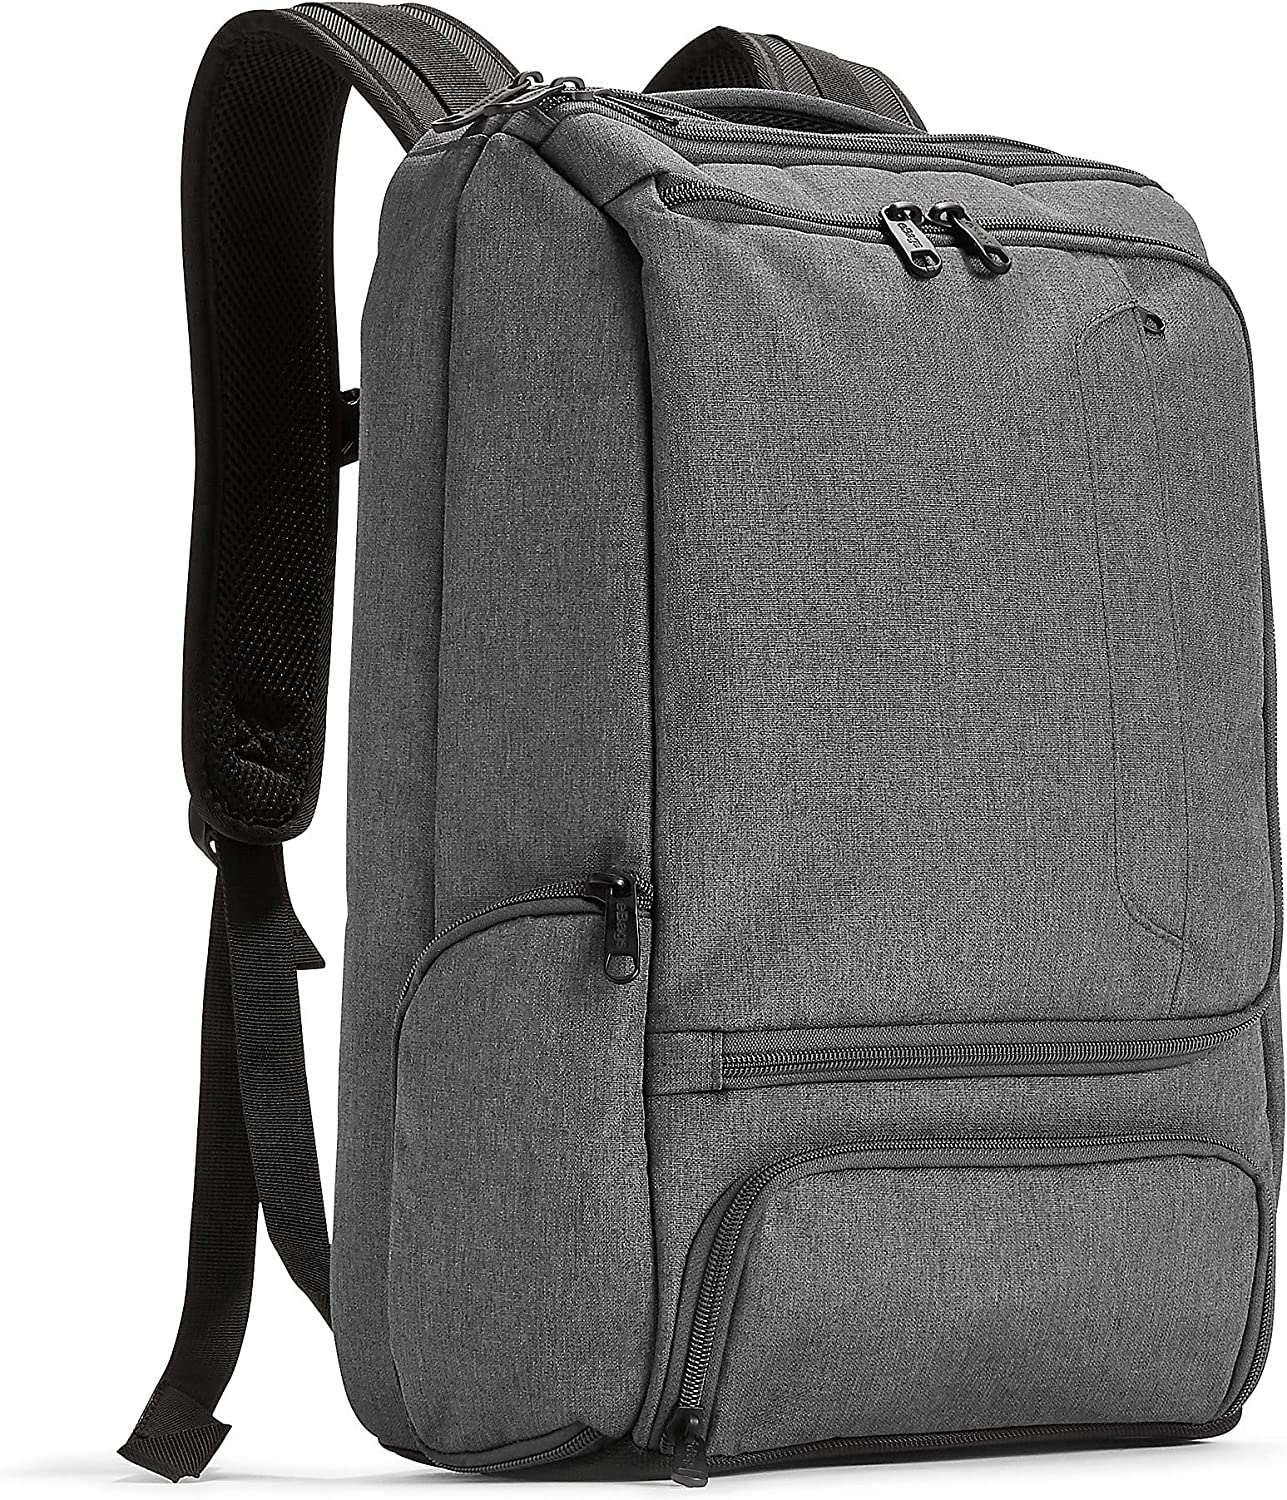 eBags Pro Slim Laptop Backpack (Heathered Graphite)